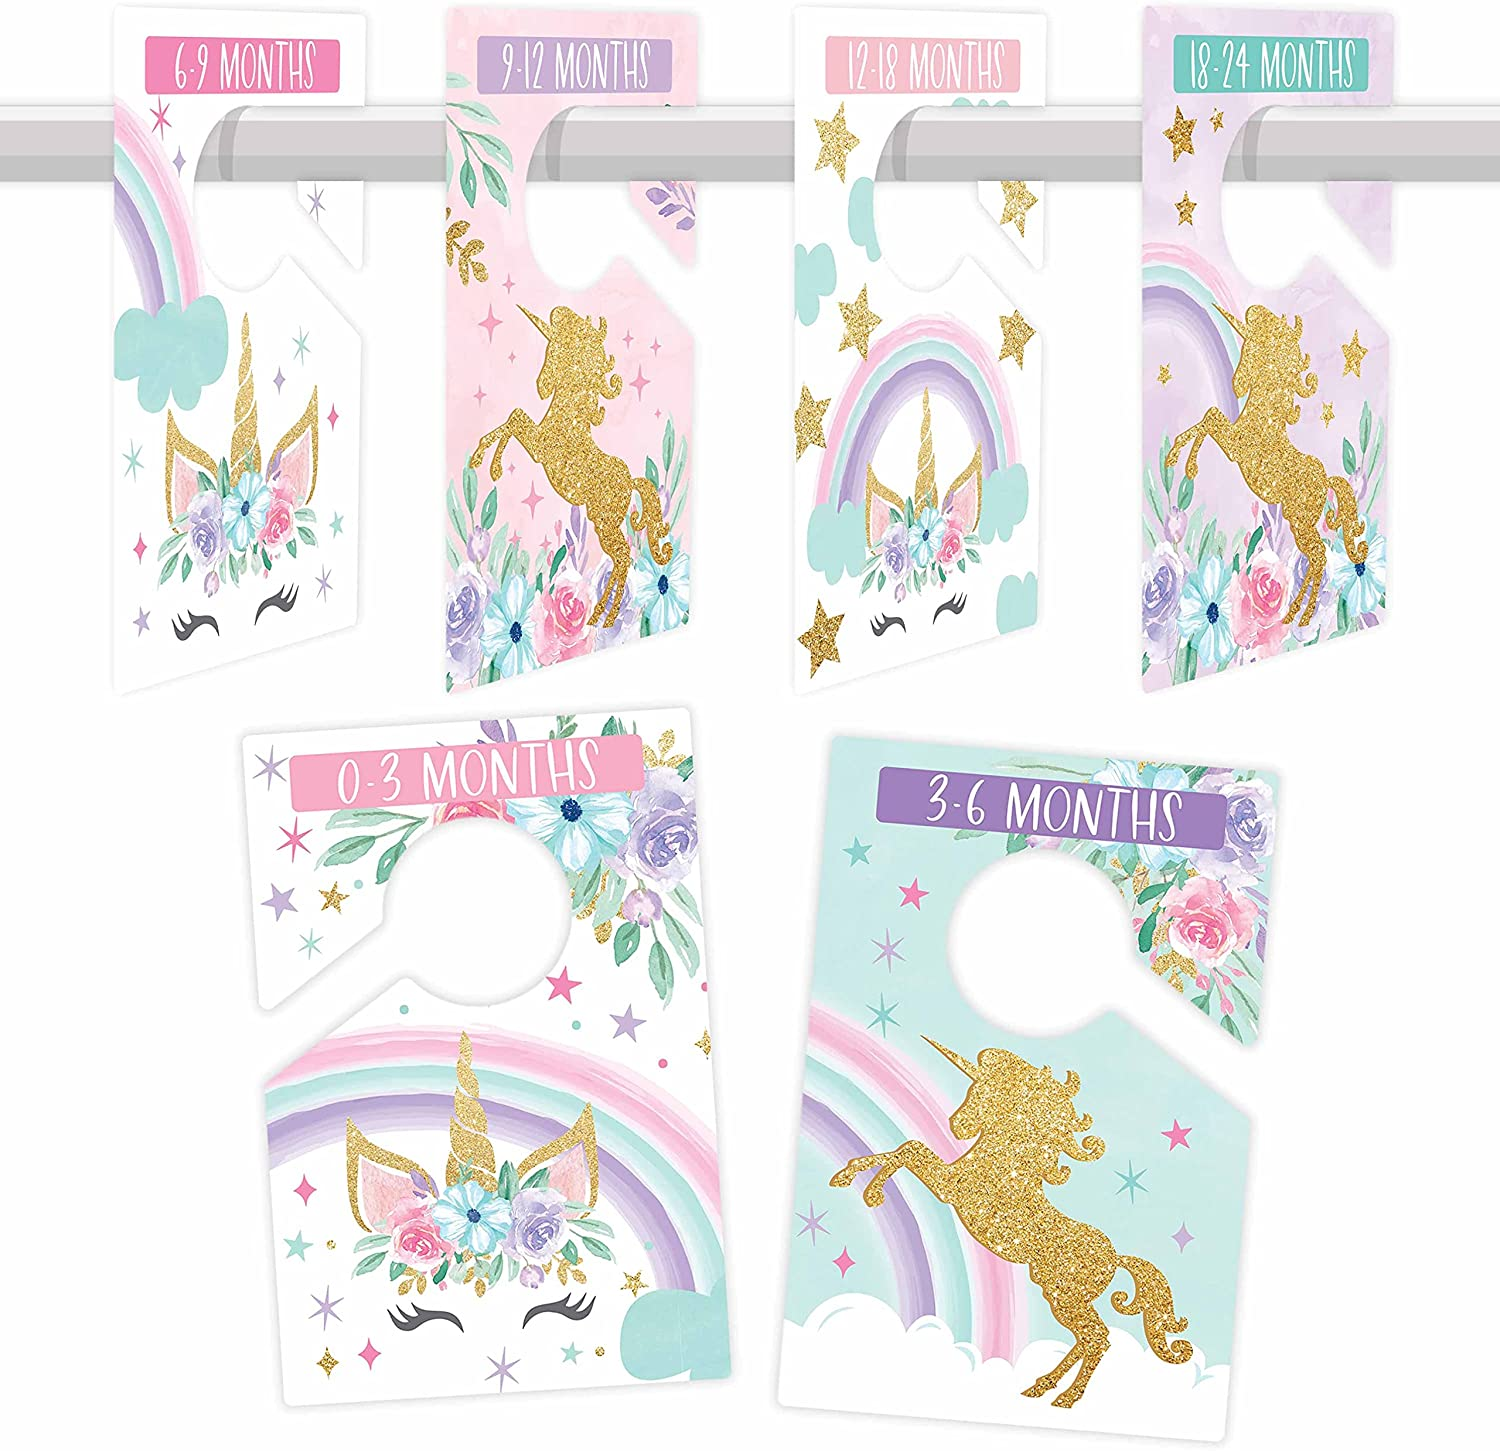 6 Baby Closet Size Dividers Baby Girl - Unicorn Baby Closet Dividers By Month, Baby Closet Organizer For Nursery Organization, Baby Essentials For Newborn Essentials Baby Girl, Nursery Closet Dividers